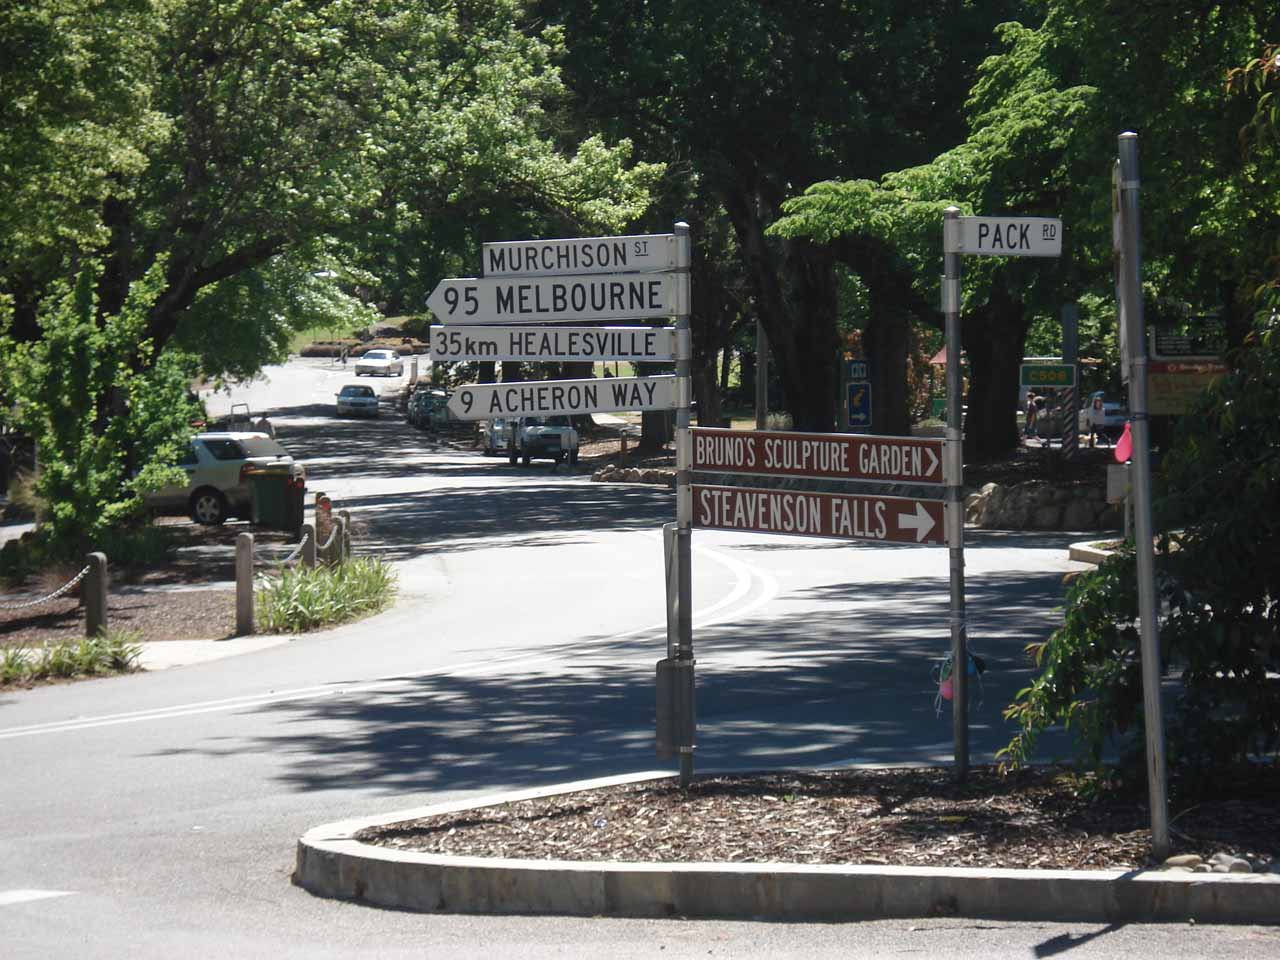 There were plenty of signs pointing the way to Steavenson Falls from the town centre of Marysville at Murchison St and Pack St (at least as of our first visit in November 2006)